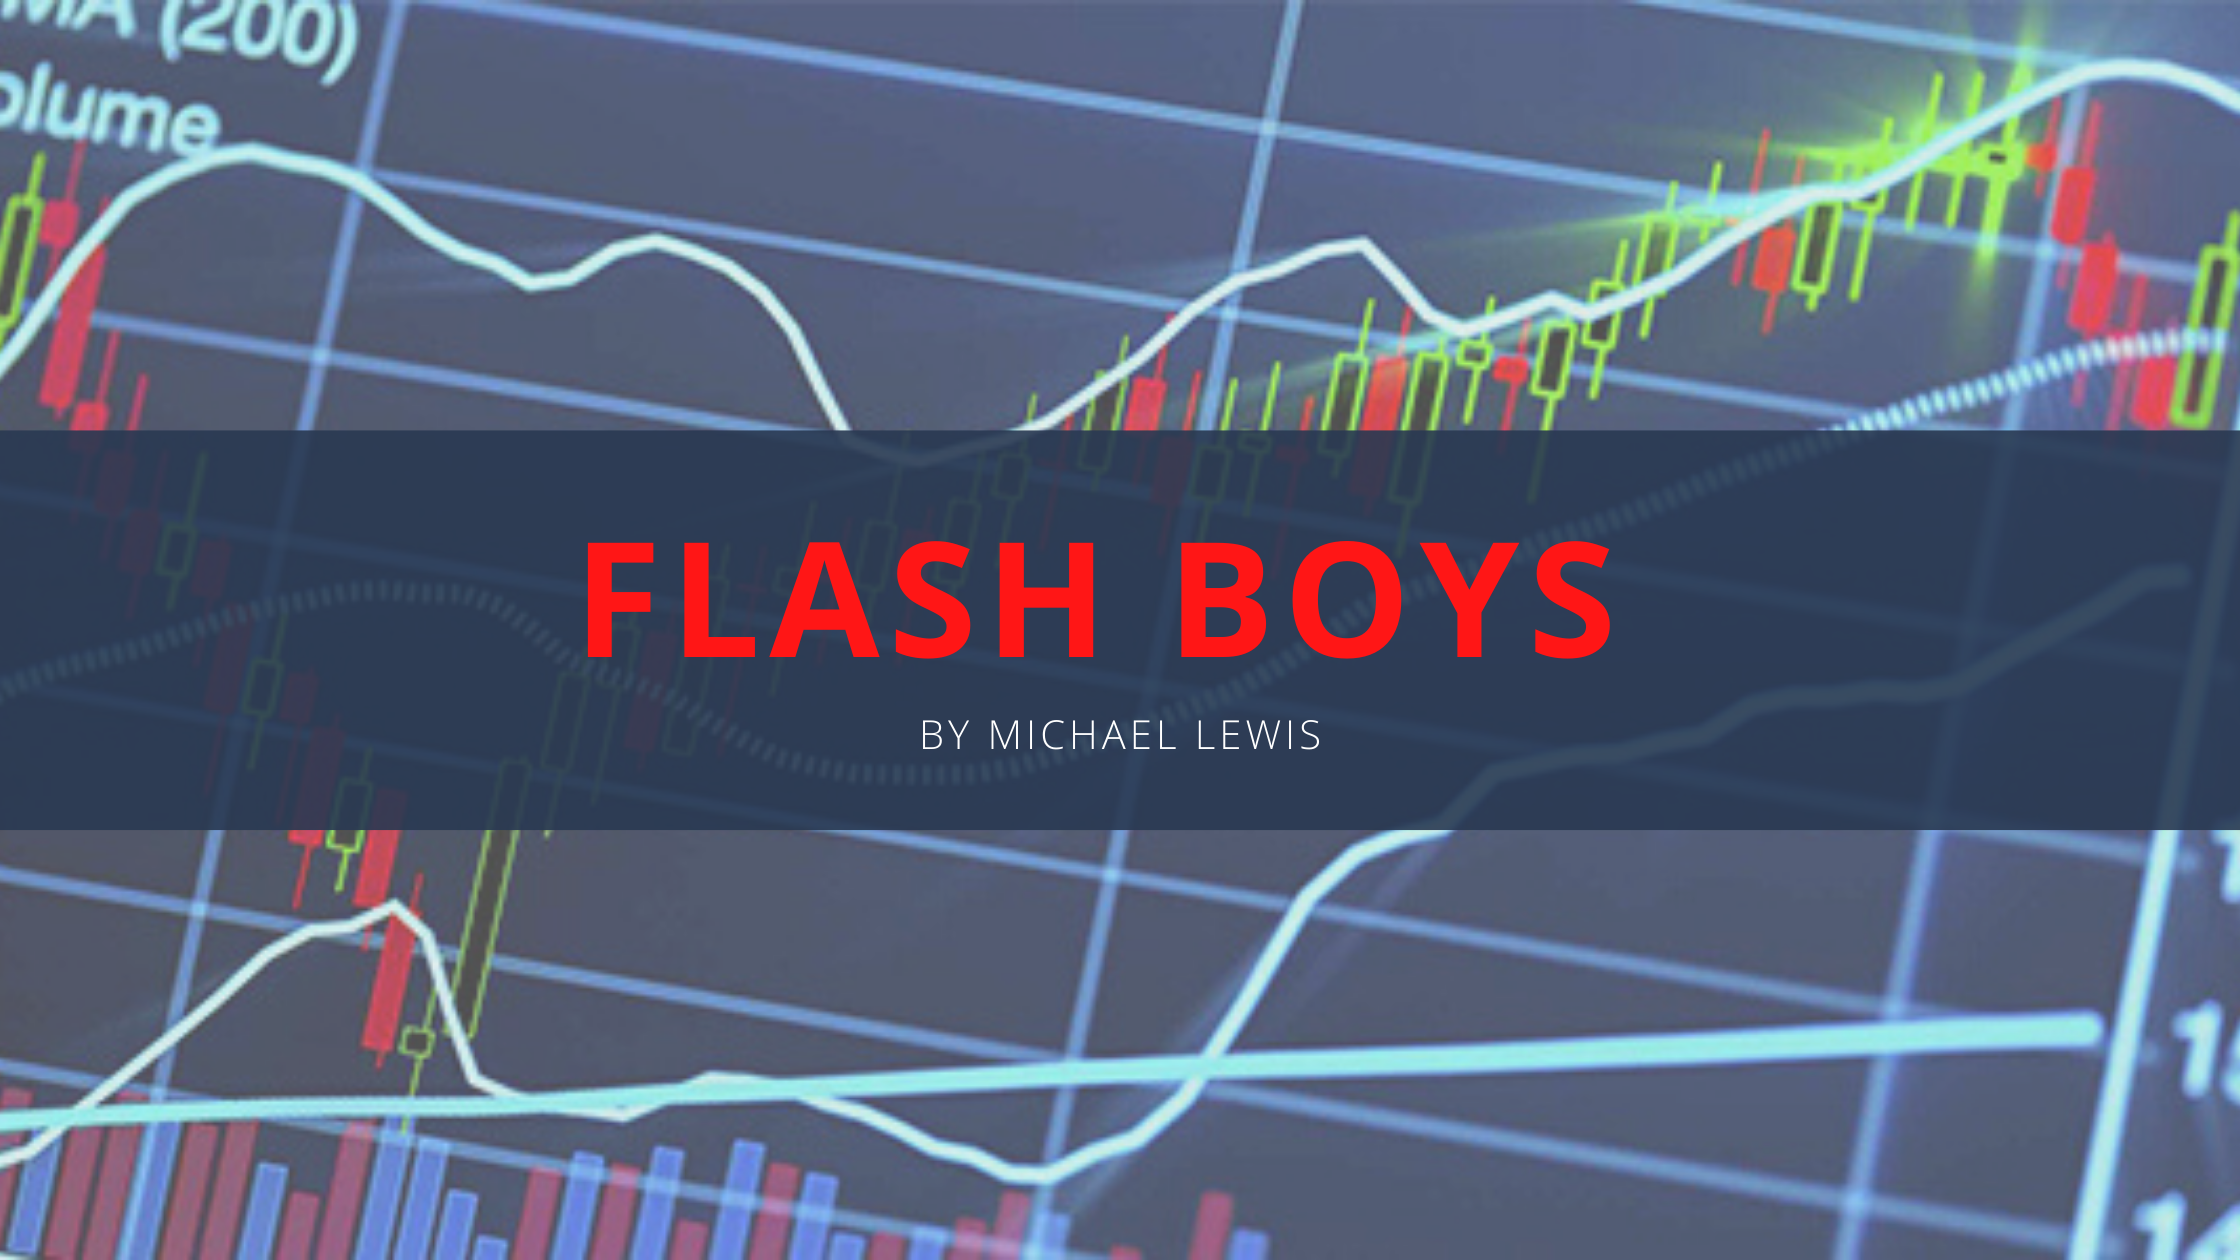 Flash Boys by Michael Lewis. A review of the book highlighting the corruption within the stock market in the United States